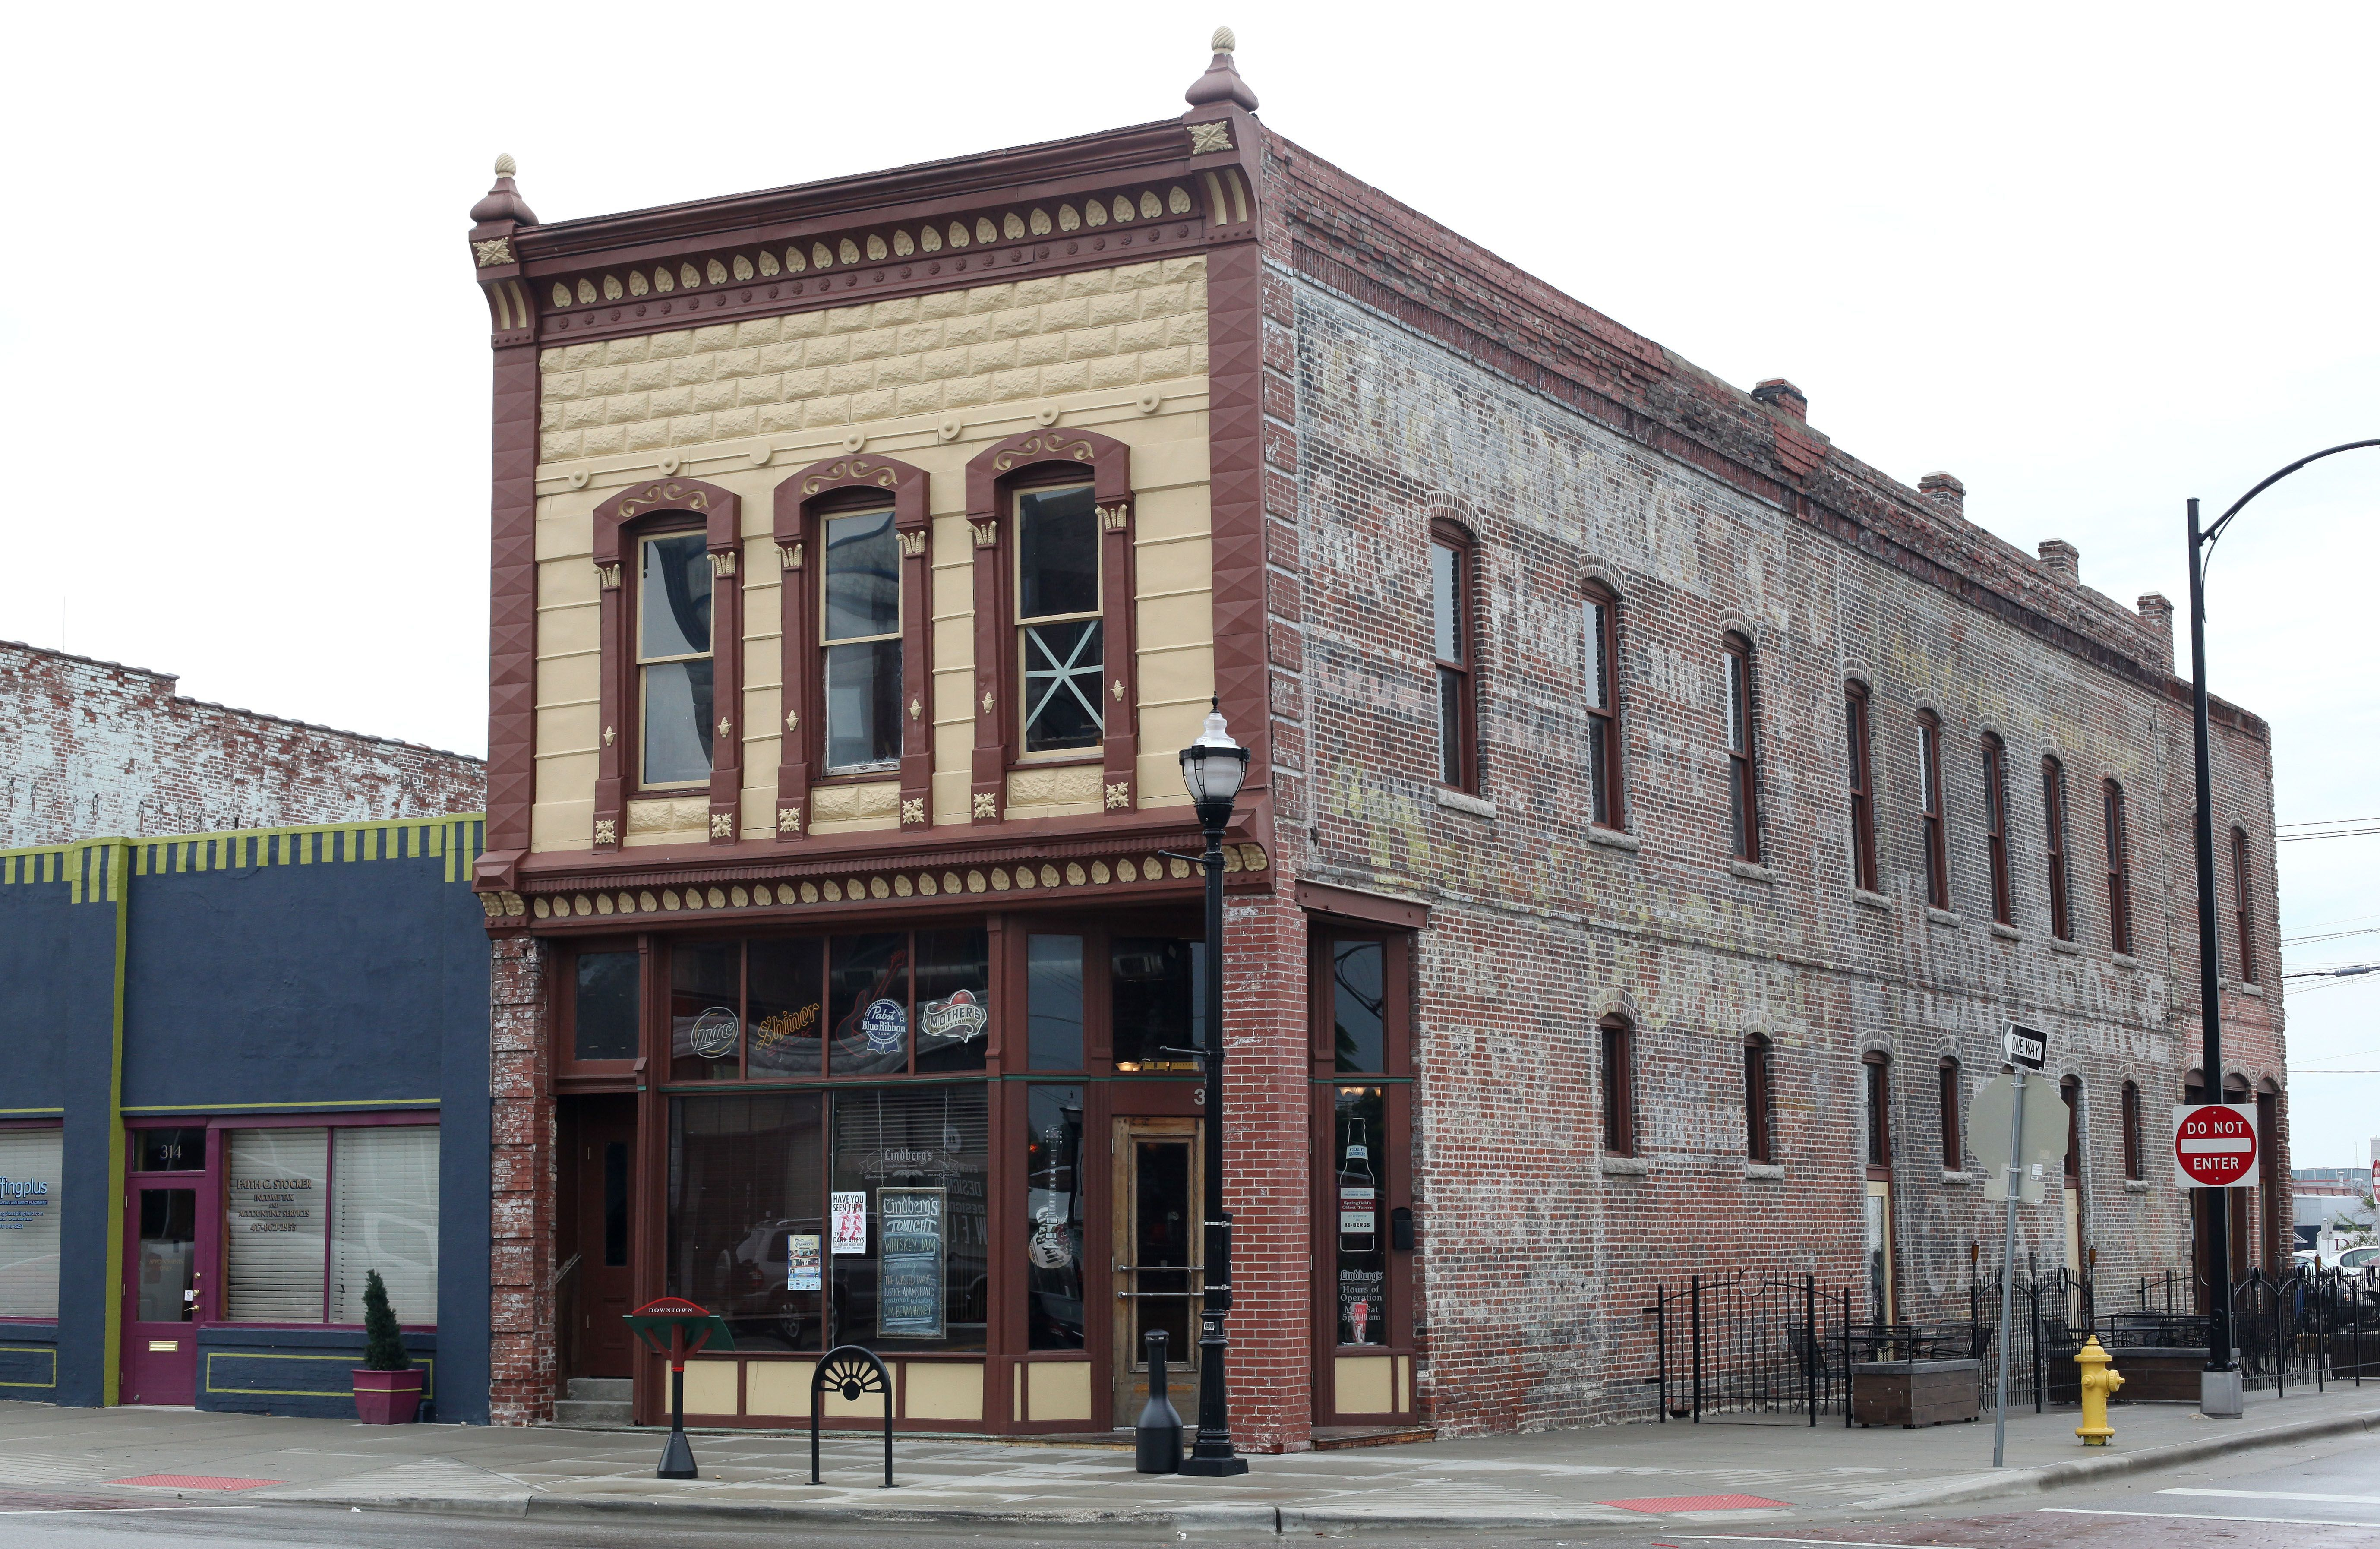 """Lindberg's, on the corner of West Commercial Street and Campbell Avenue, opened when the railroad came through in the 1870's. While the bar that bills itself as """"Springfield oldest tavern"""" was shuttered for a number of years, we still feel it deserves a shout-out. Today, it's also a restaurant and serves brunch on Sundays."""